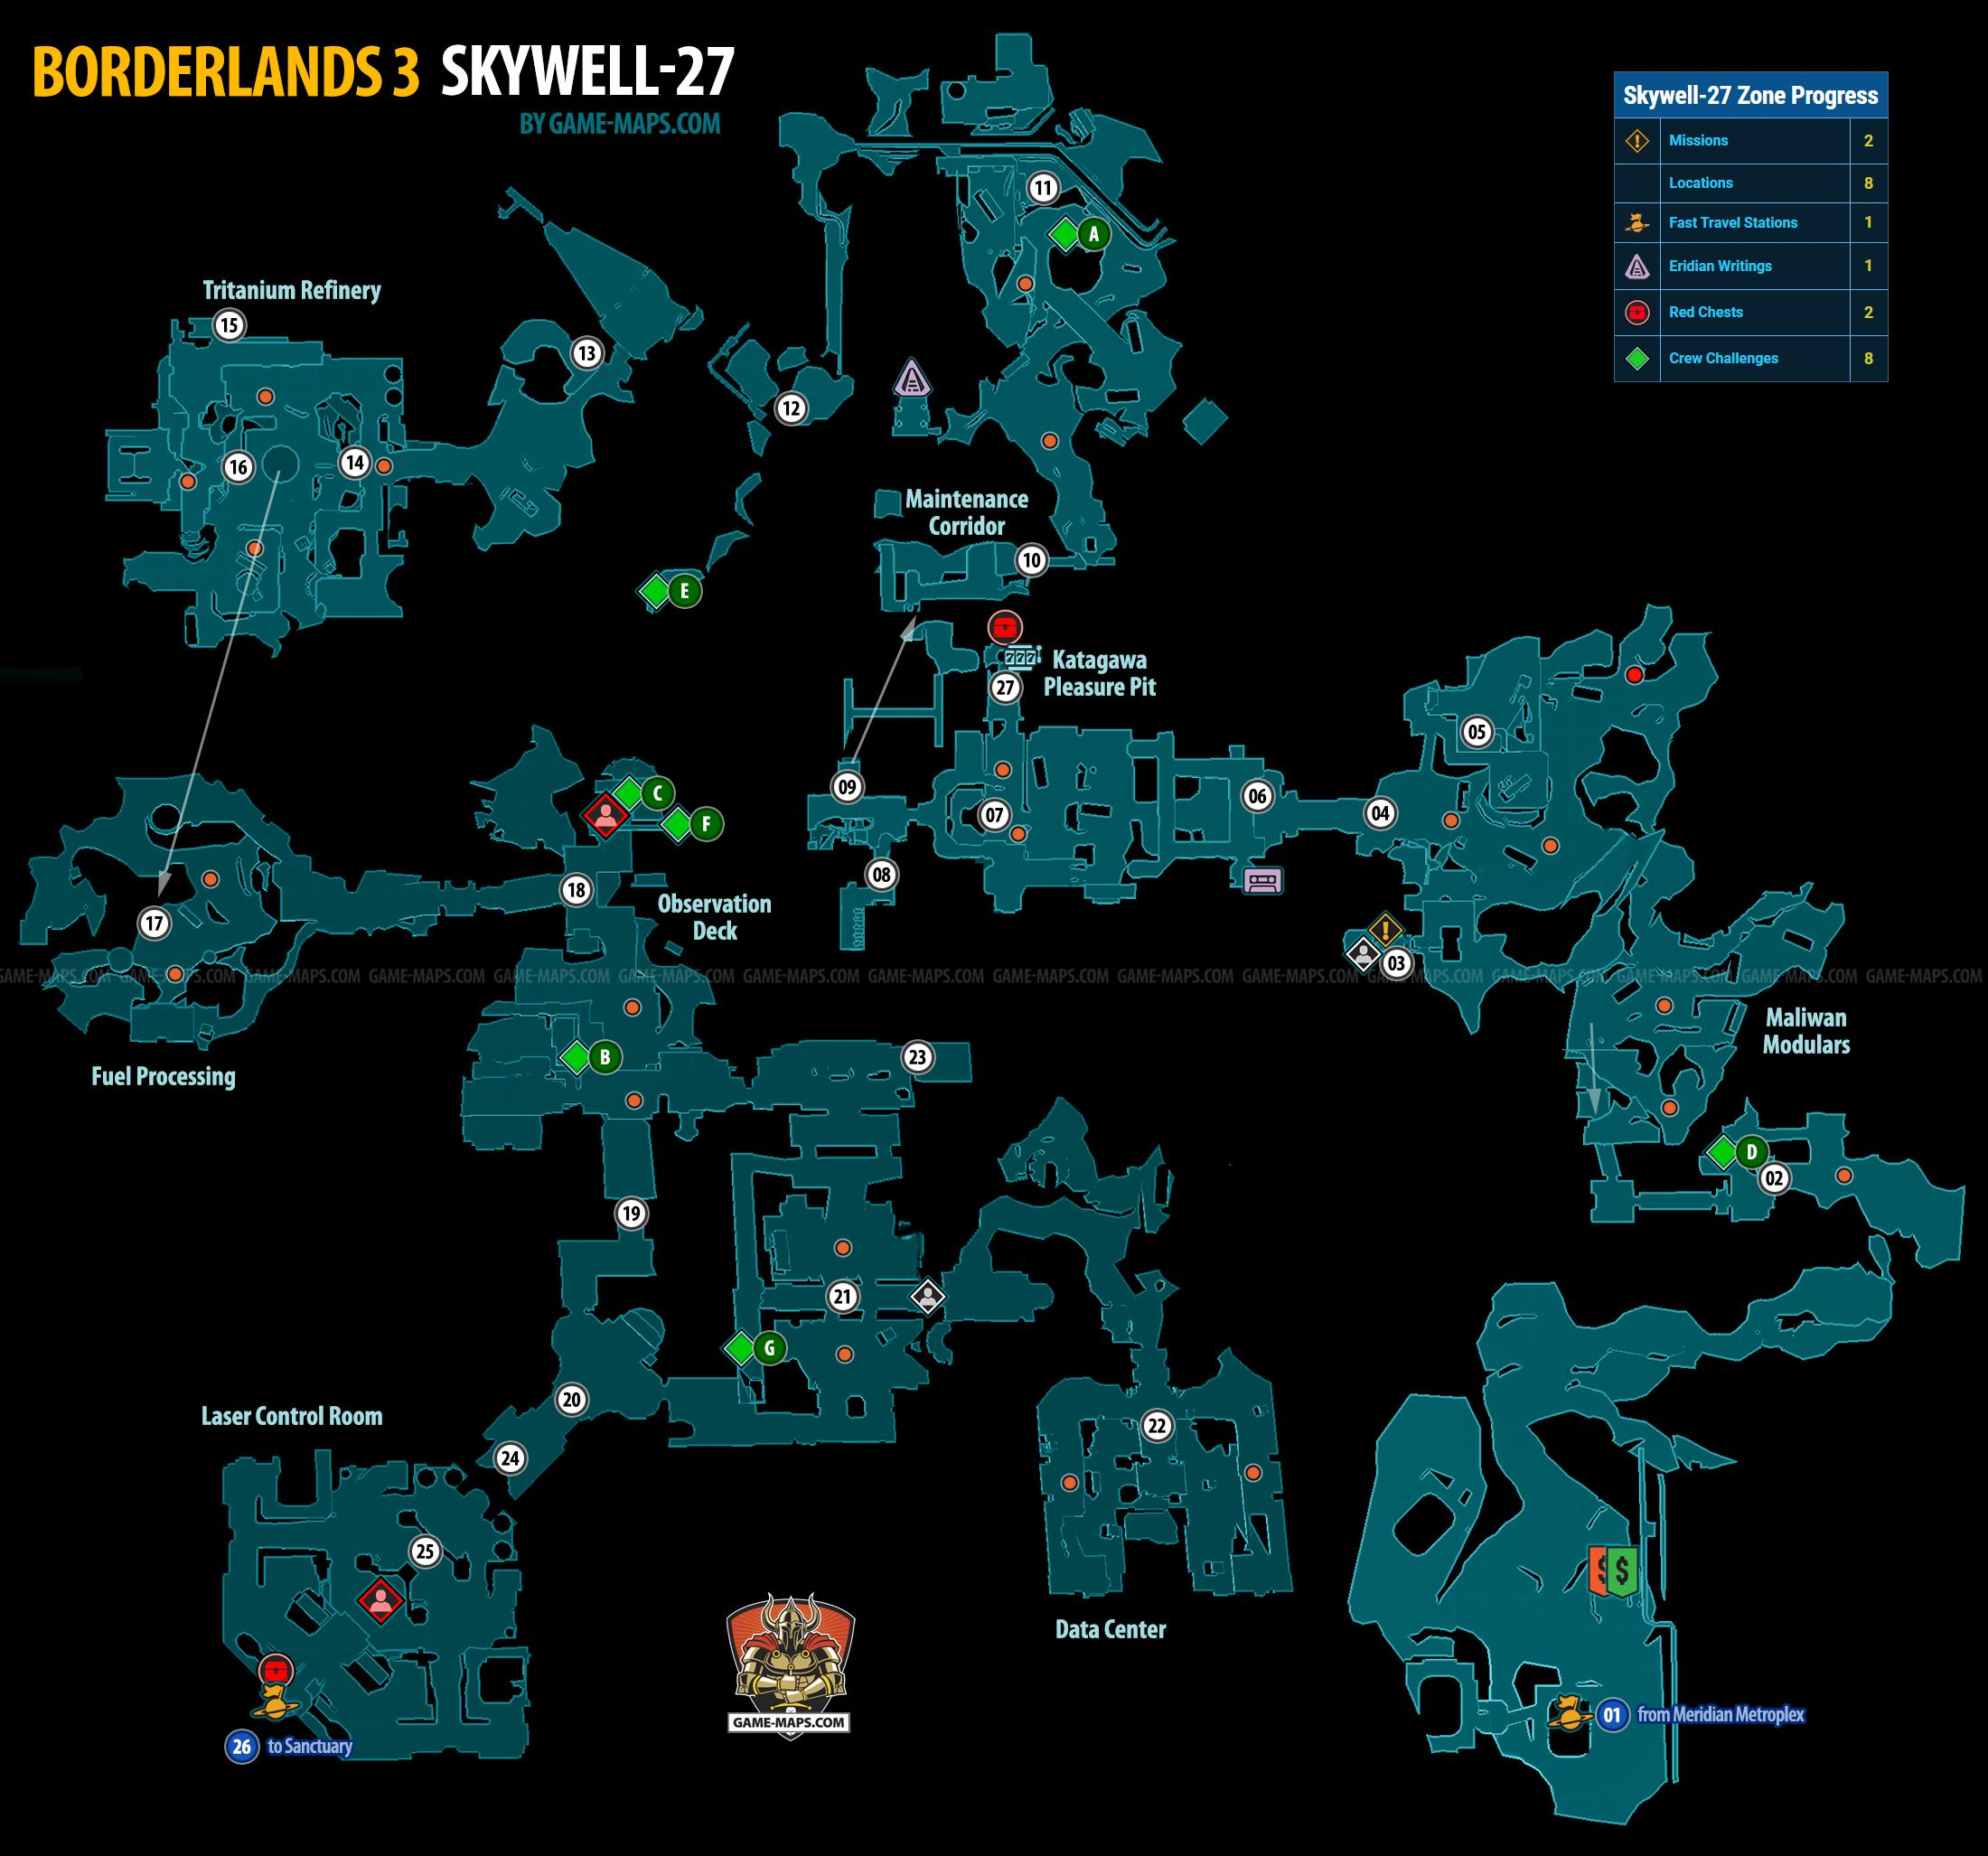 Skywell 27 Map For Borderlands 3 Game Maps Com